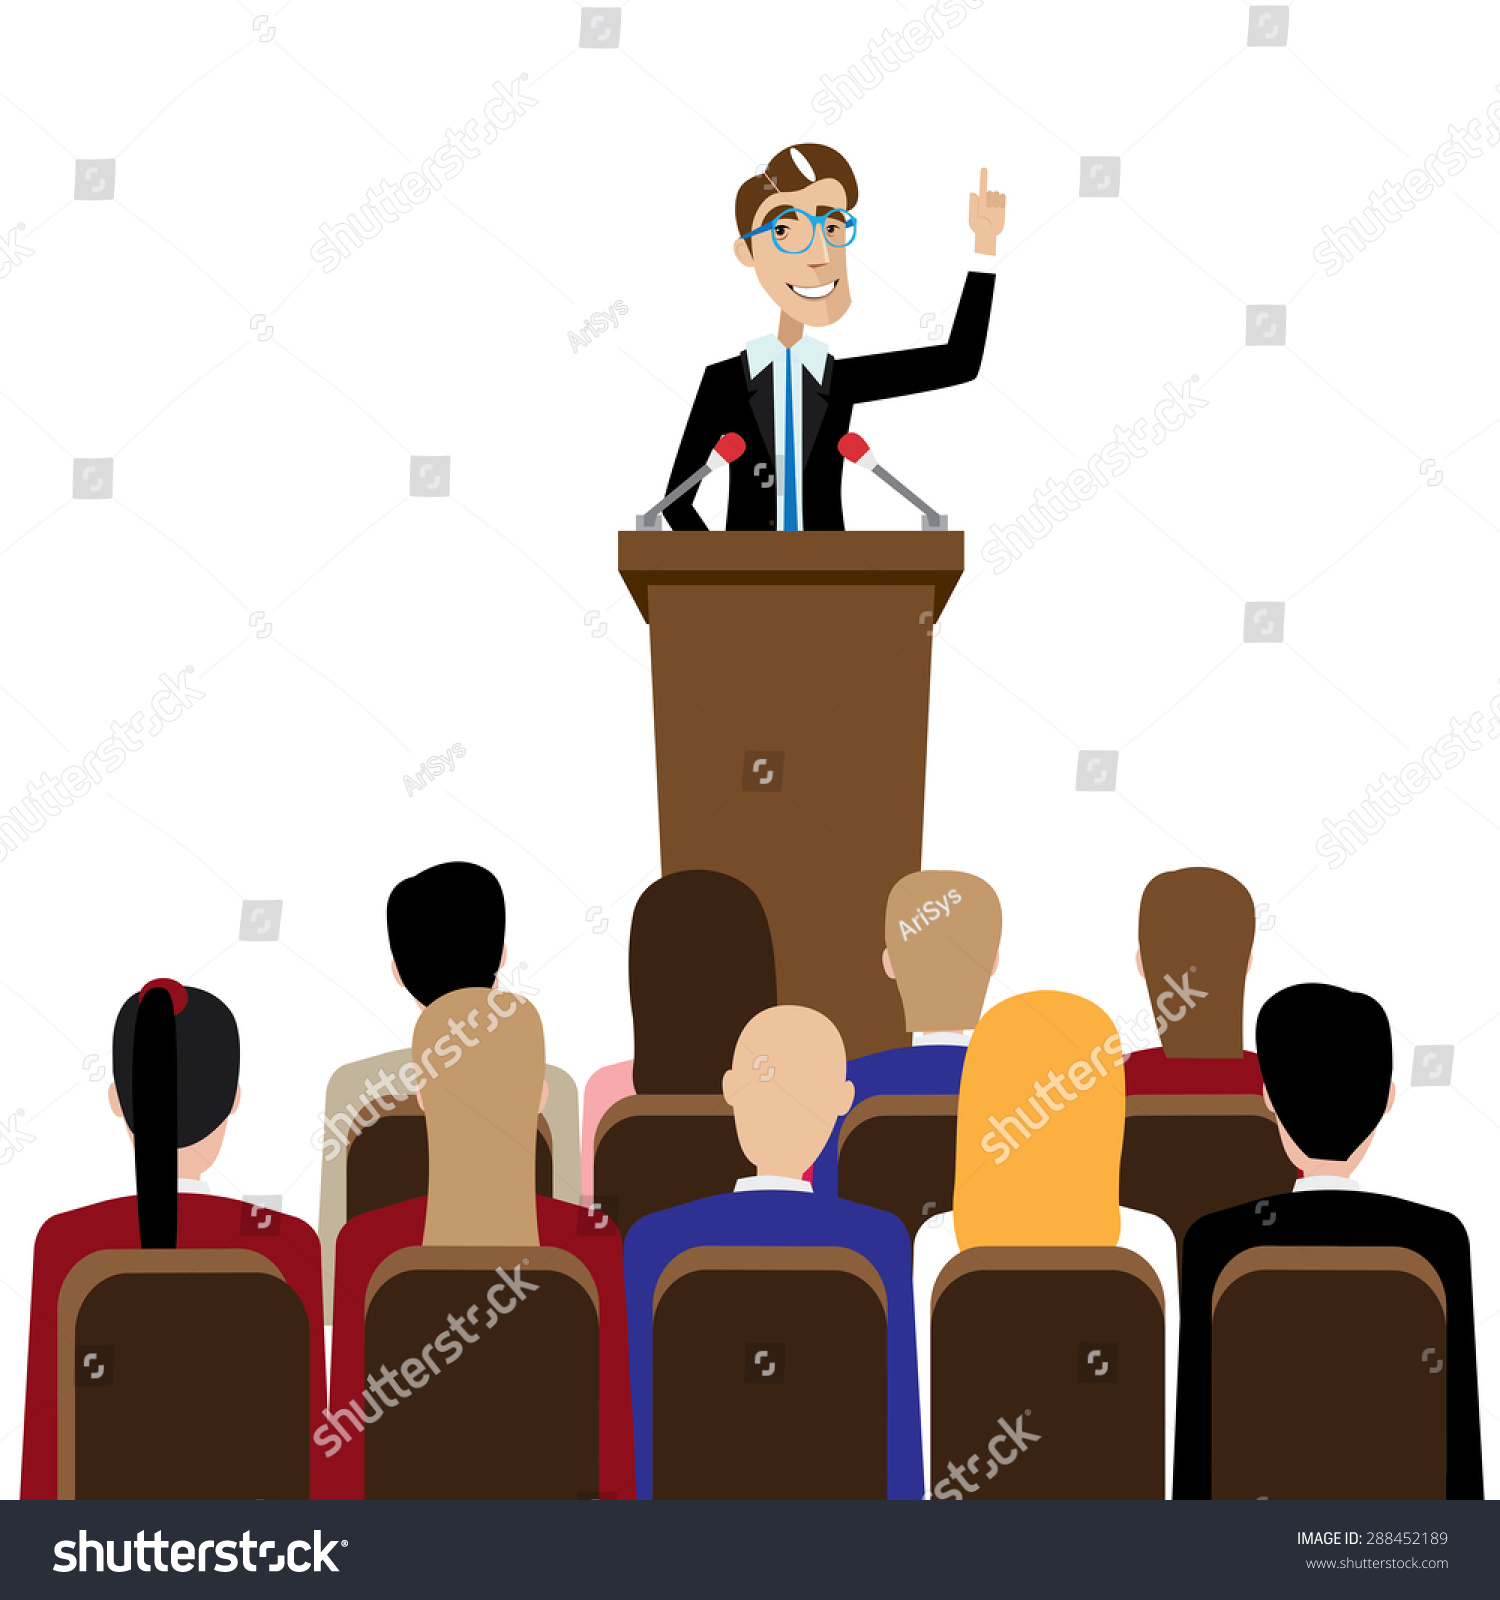 how to get over severe fear of public speaking